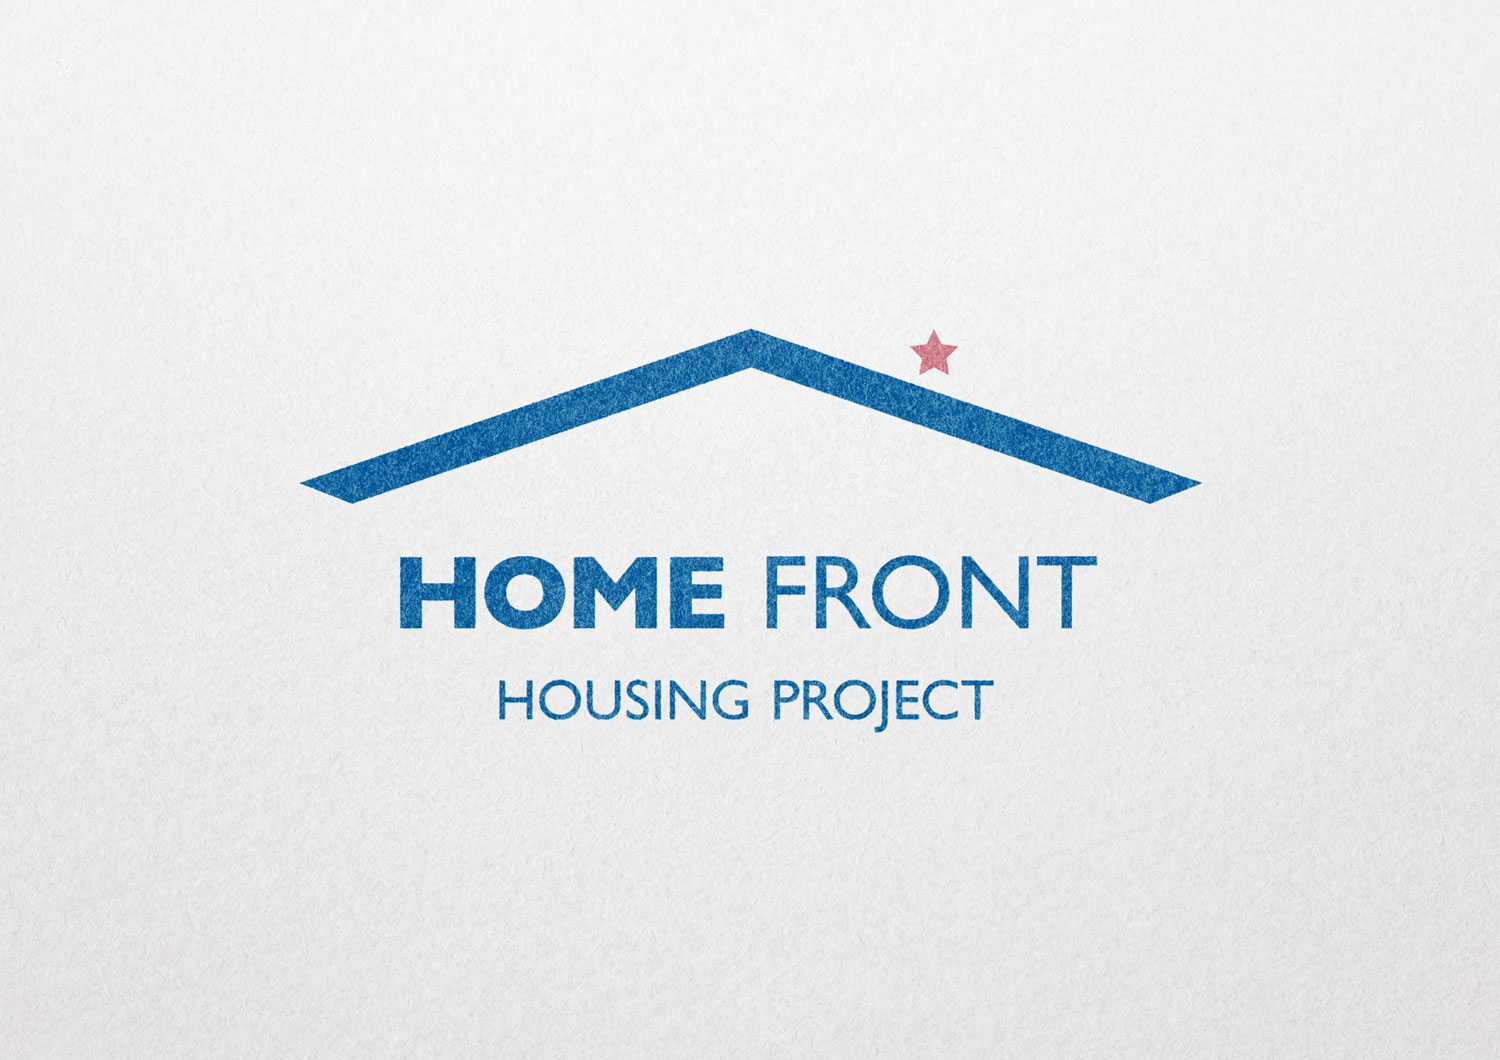 home front housing project logo